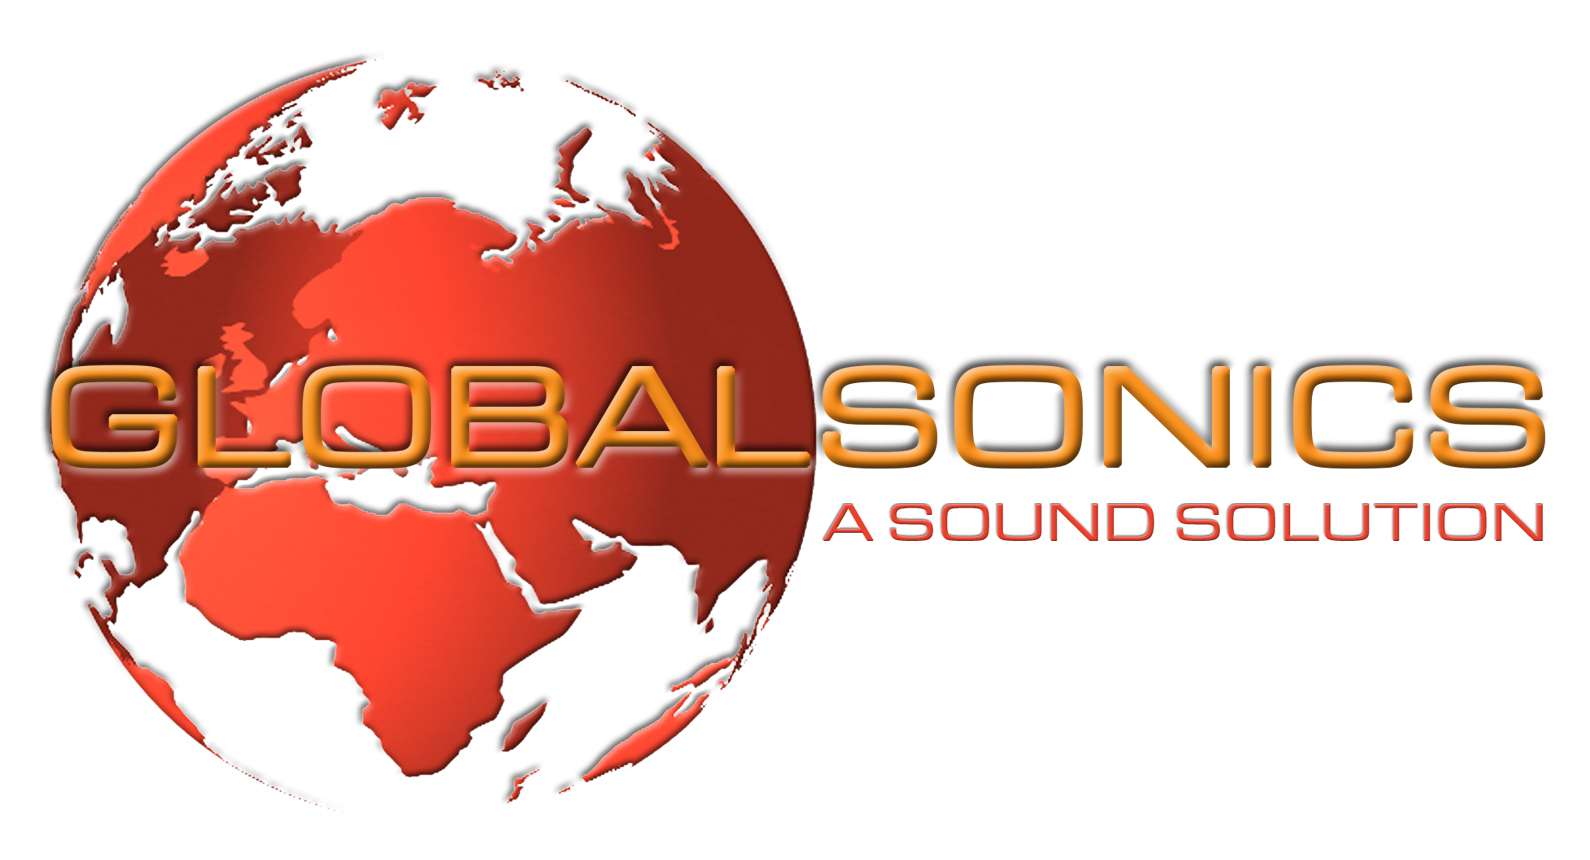 What do you think of 'Globalsonics'?